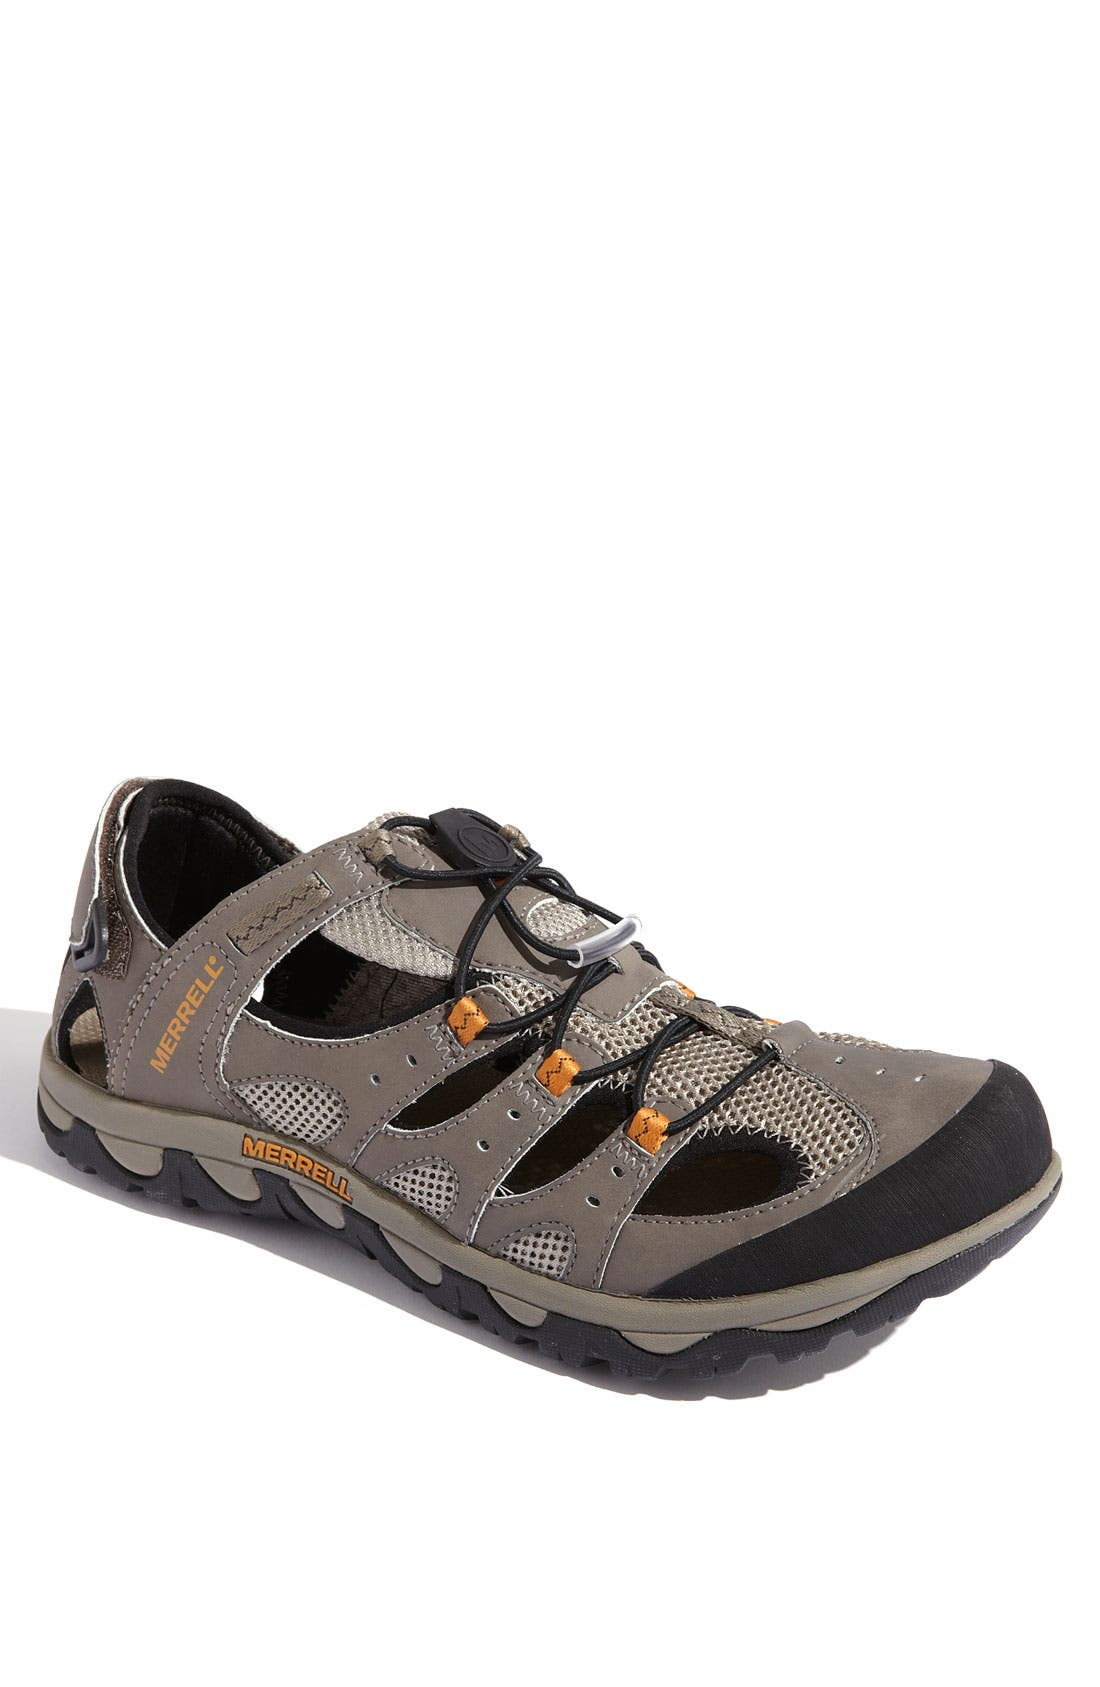 Alternate Image 1 Selected - Merrell 'Portage Web' Water Shoe (Men)